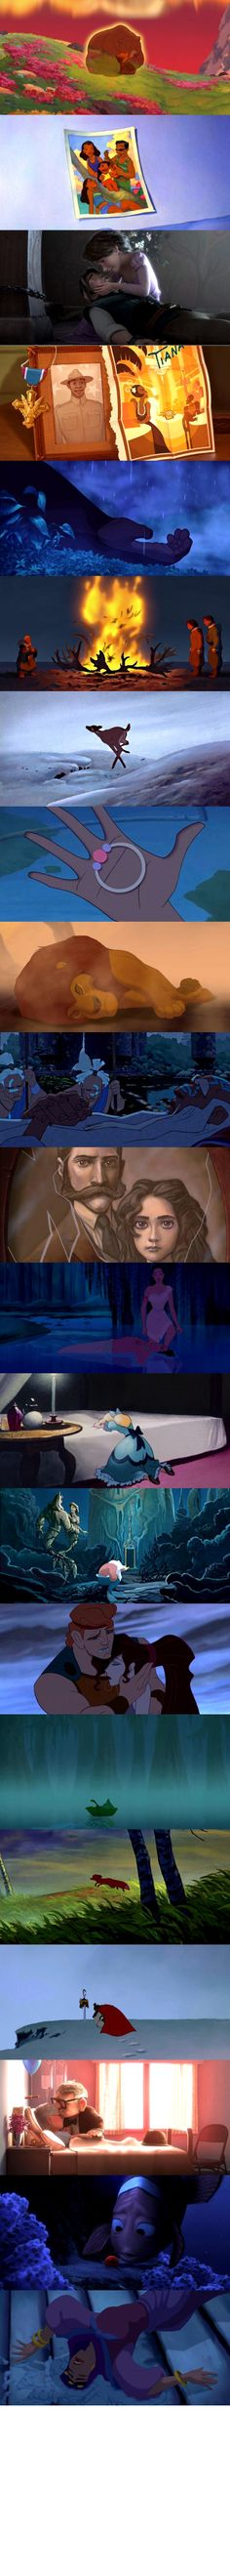 Sad Moments in Disney and Pixar Films